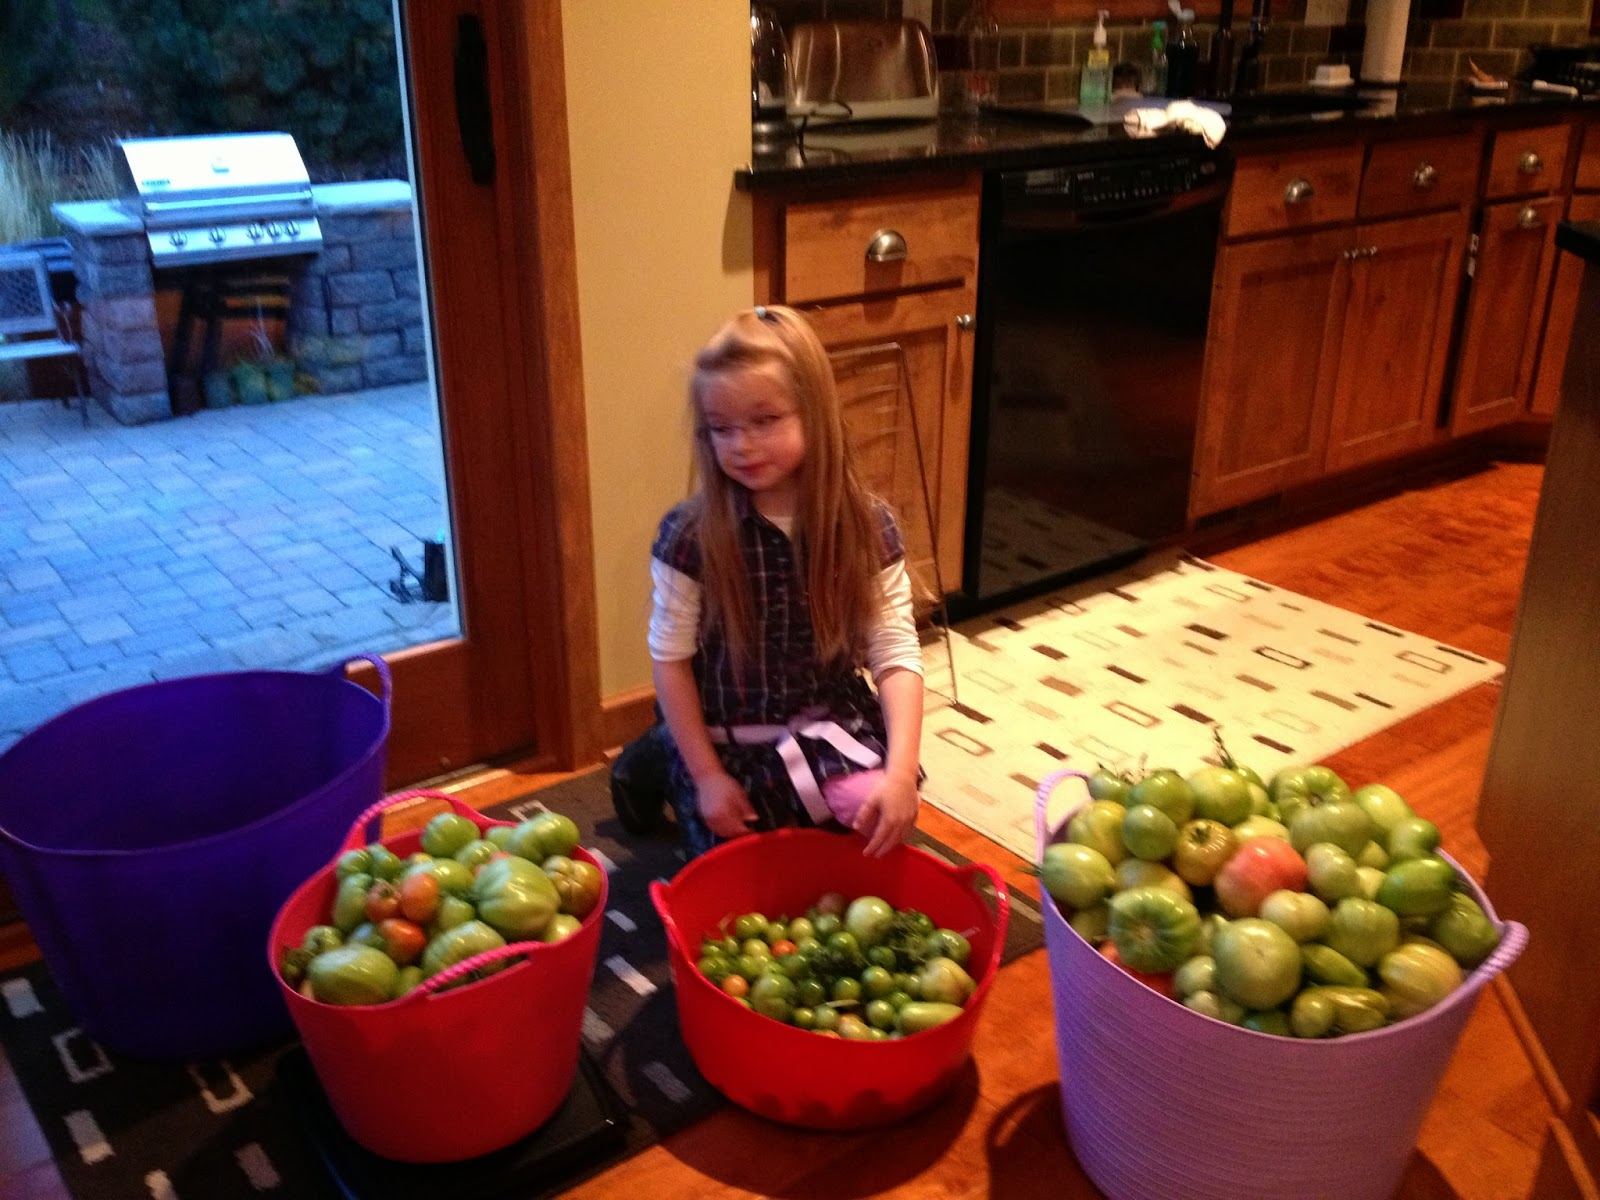 78 pounds of unripe tomatoes for canning